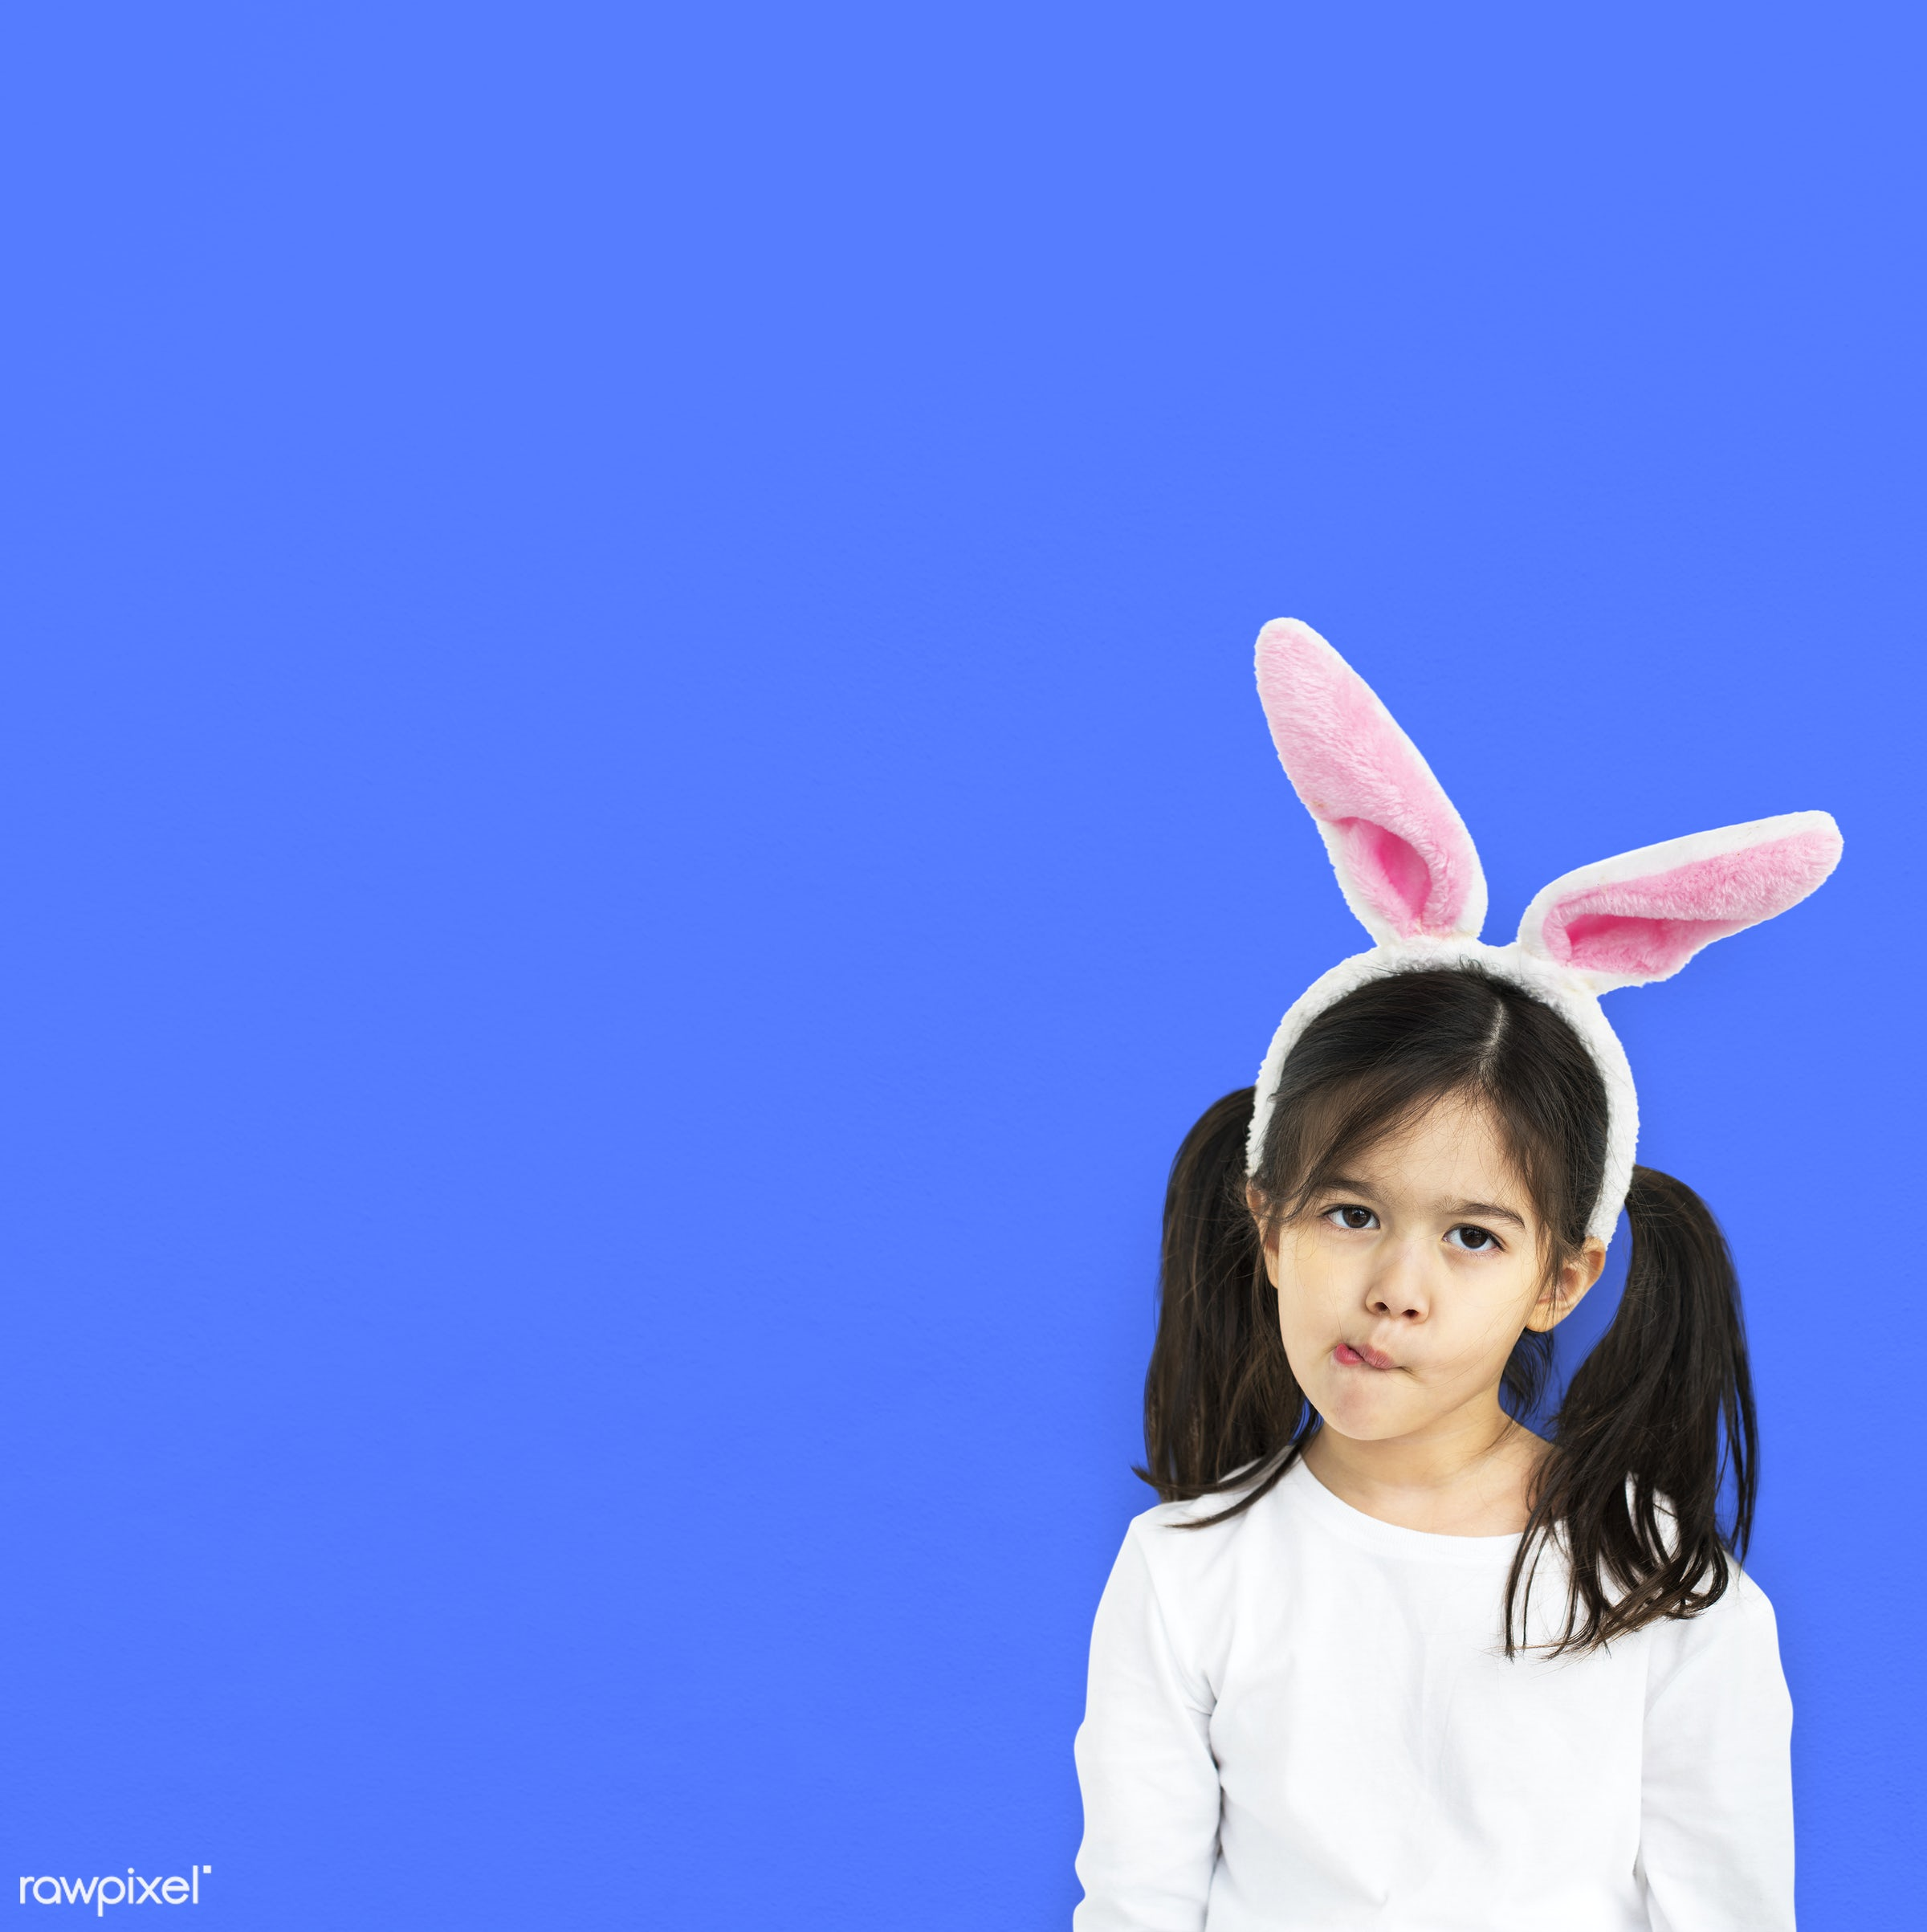 expression, studio, face, person, playful, children, little, imagination, people, asian, face expression, child, girl,...